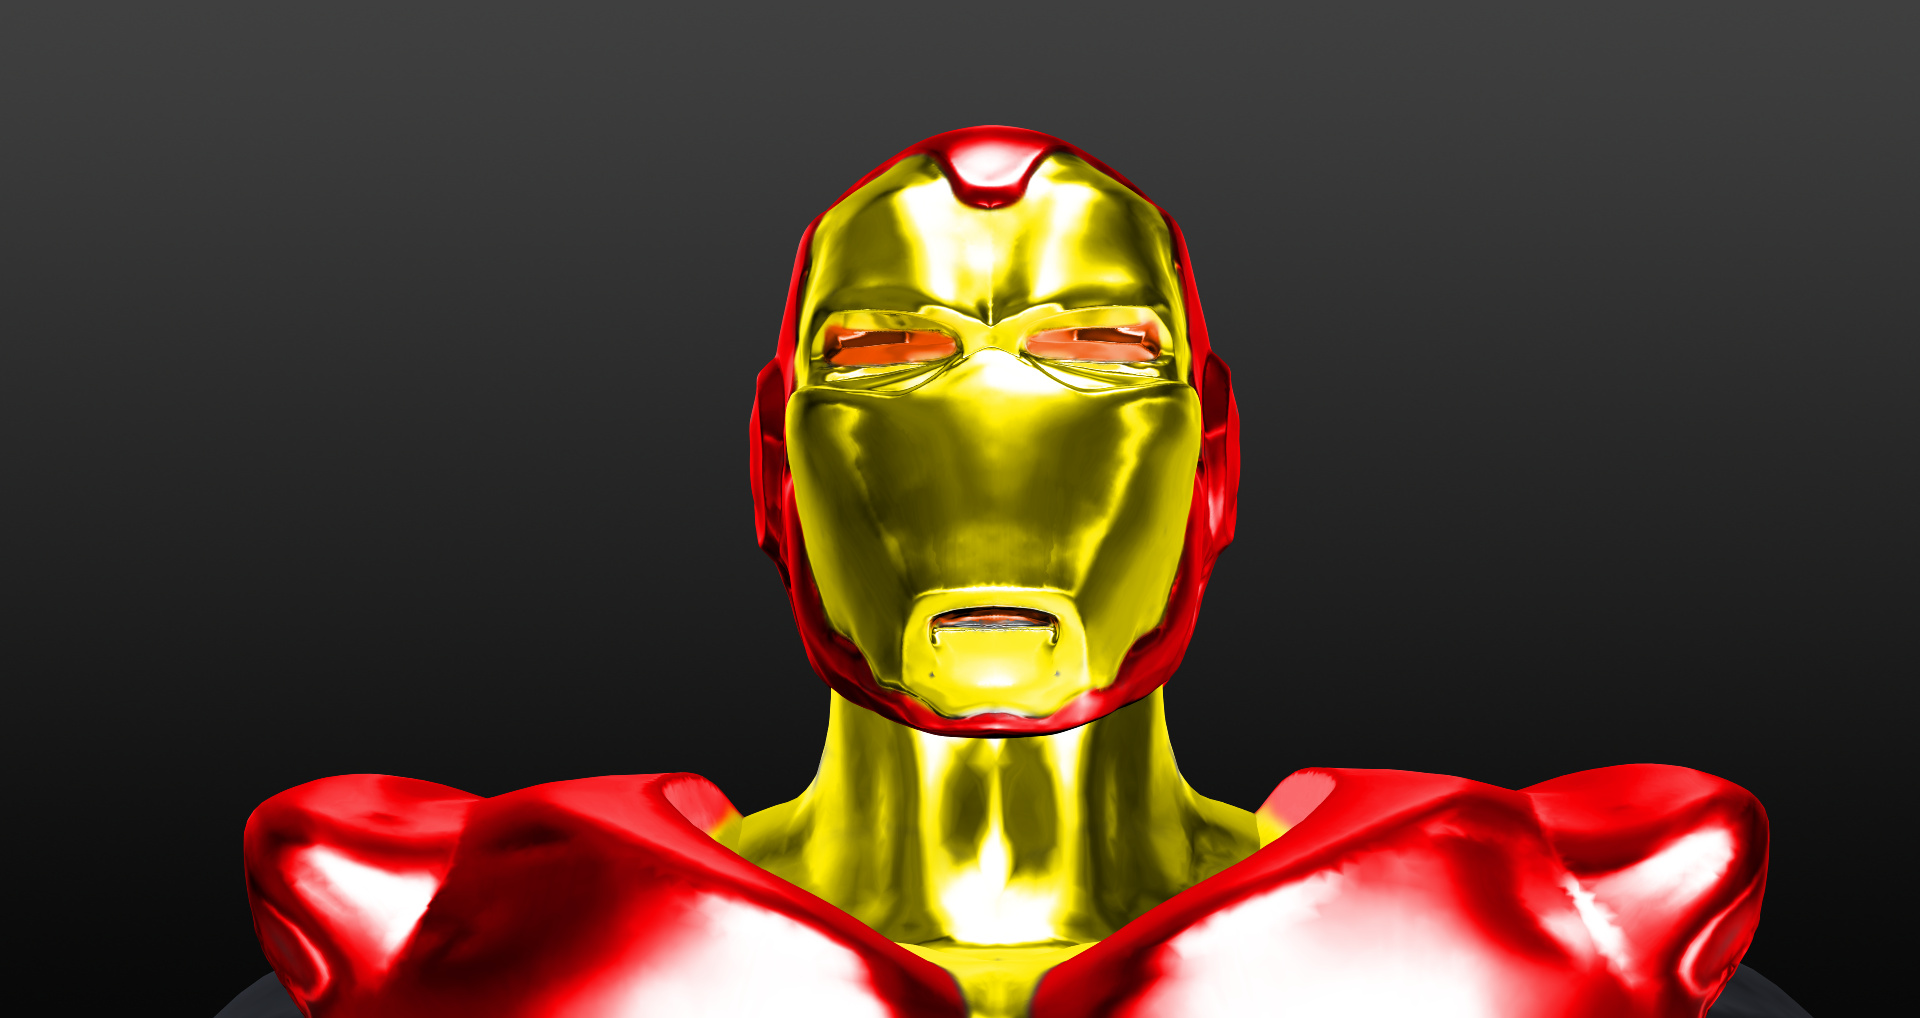 Ironman_Prova24_color3_head_front01